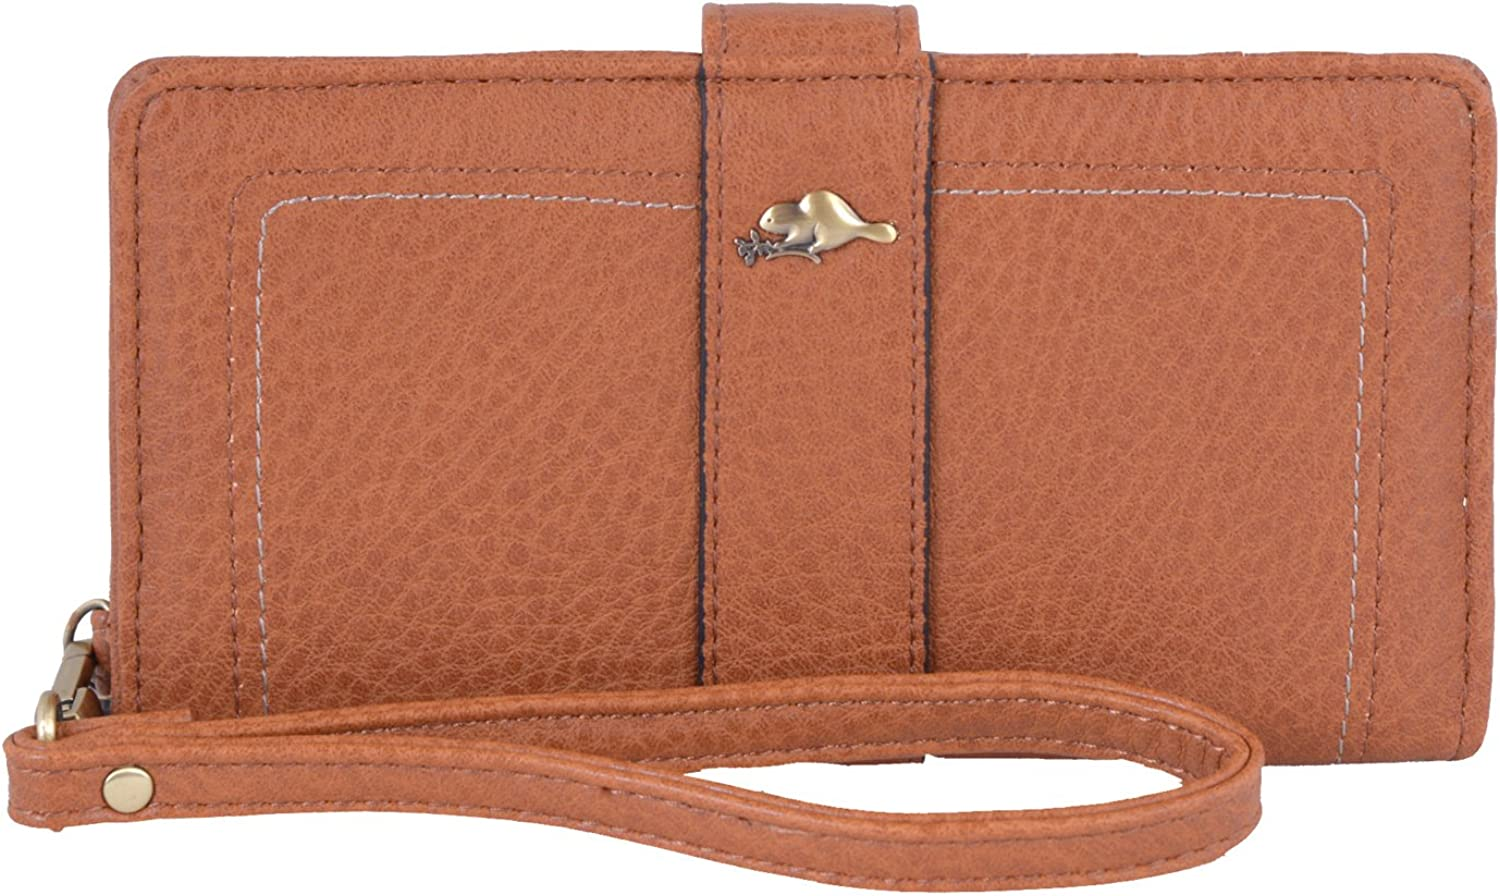 Roots 73 Women's RFID Predected Wristlet Clutch Wallet (Nubuck)